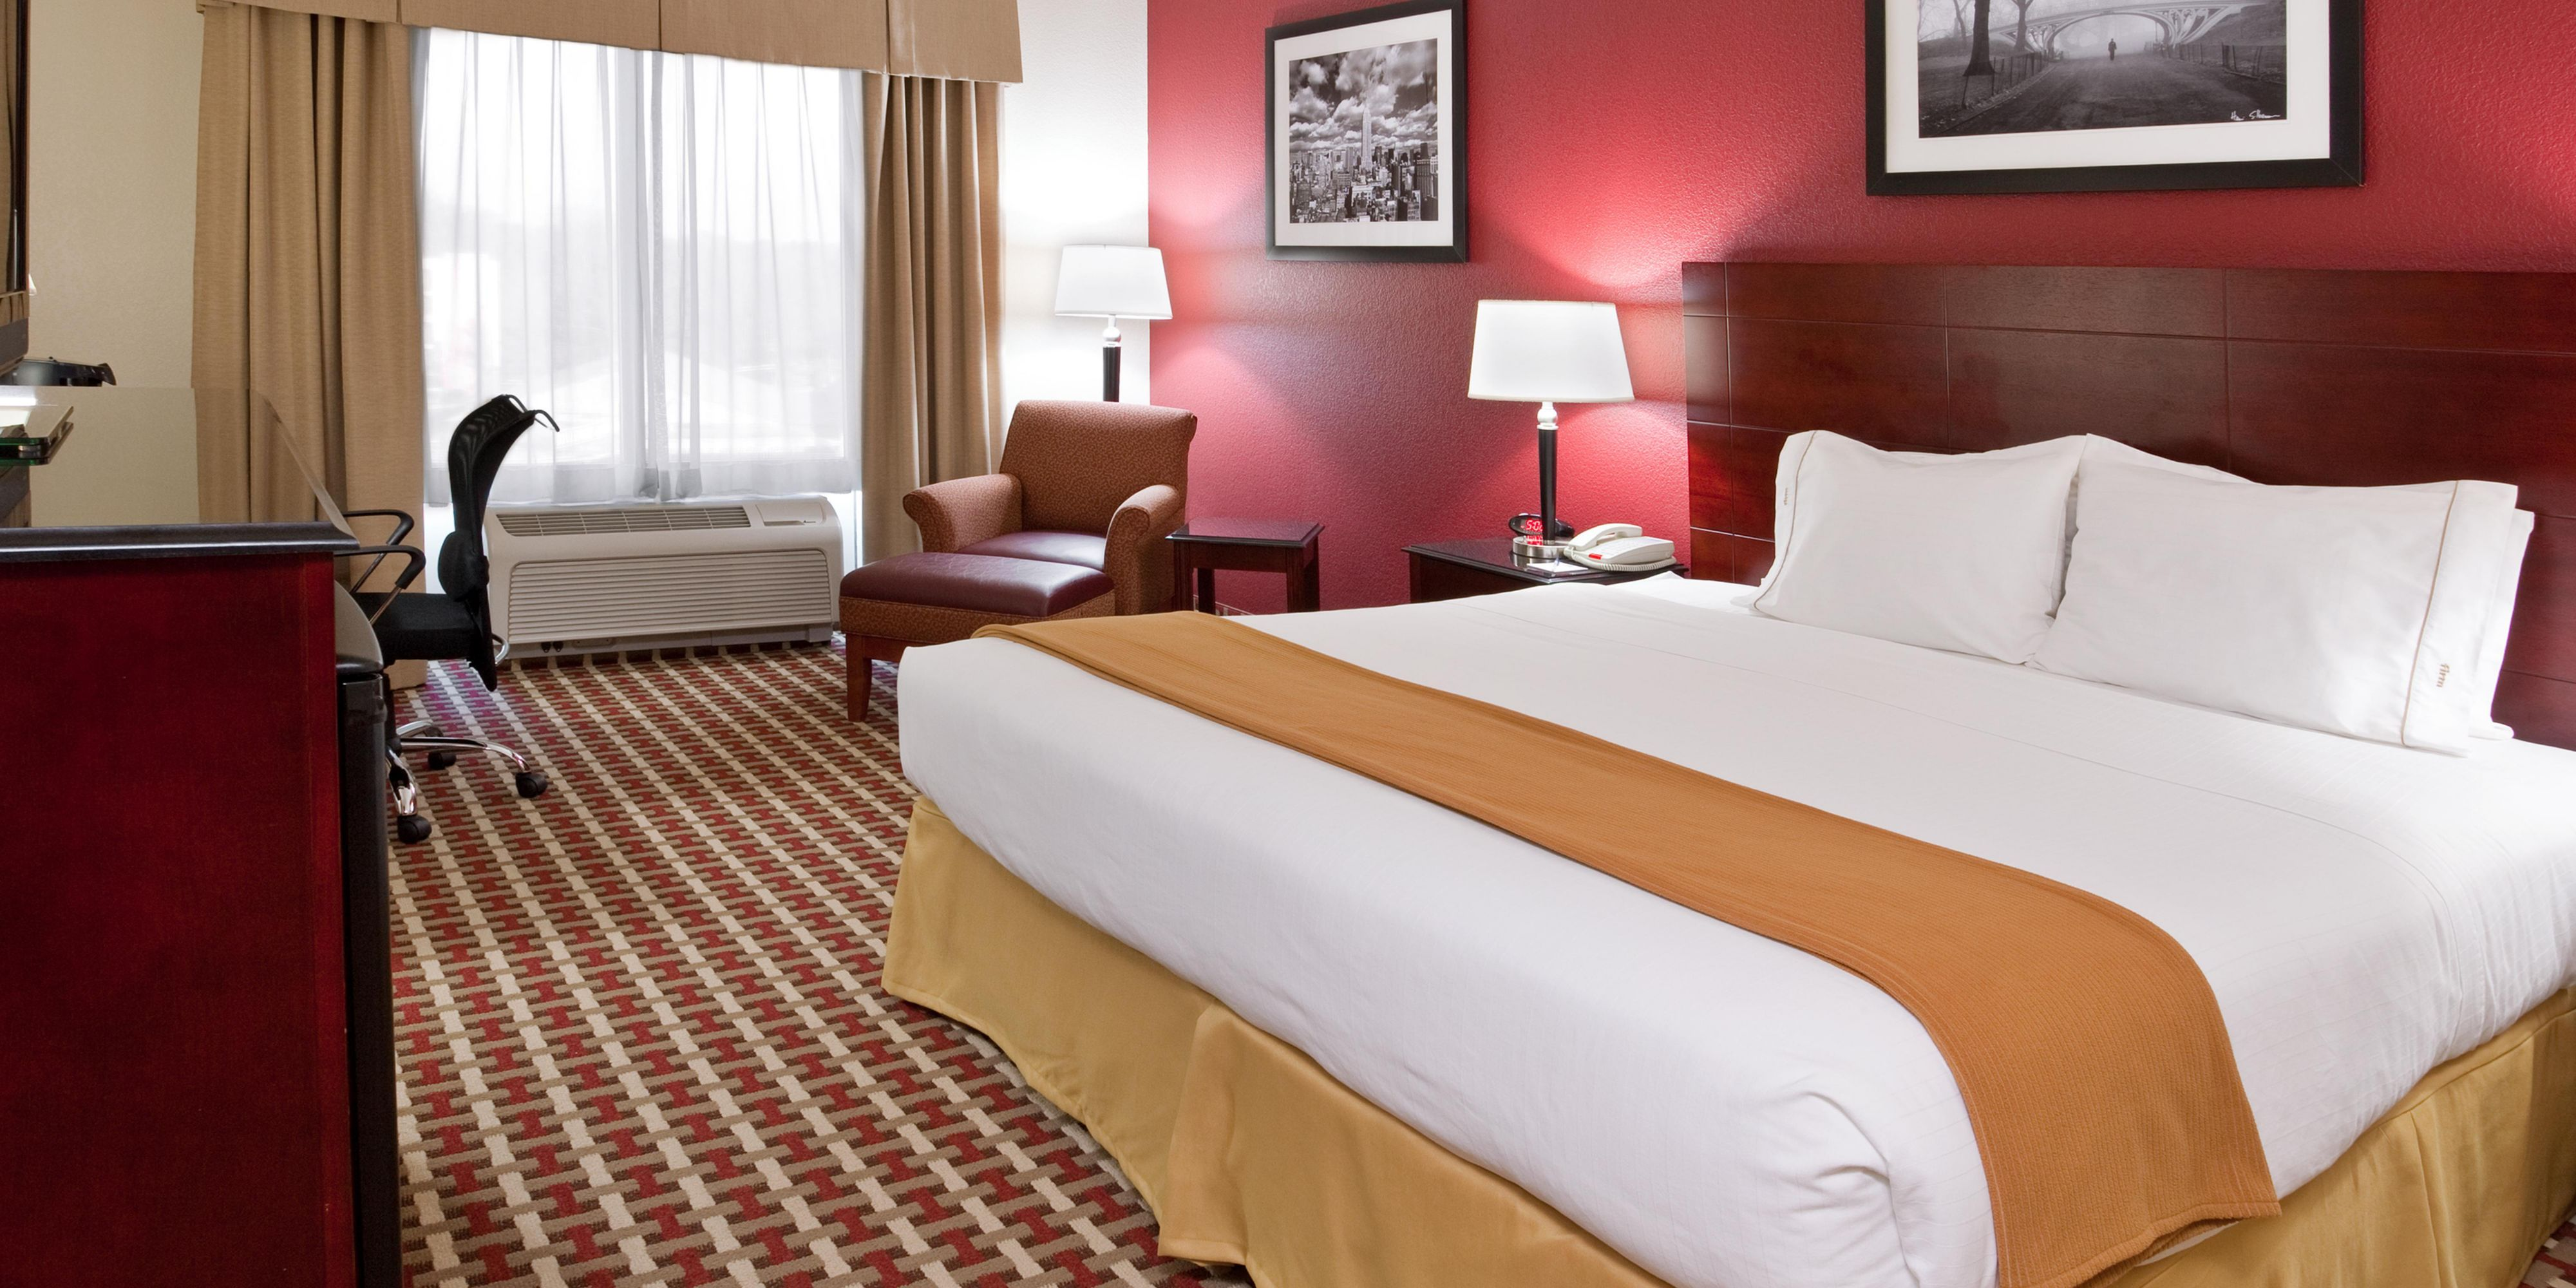 Check availability of business name ohio - Holiday Inn Express And Suites Columbus 4244696365 2x1